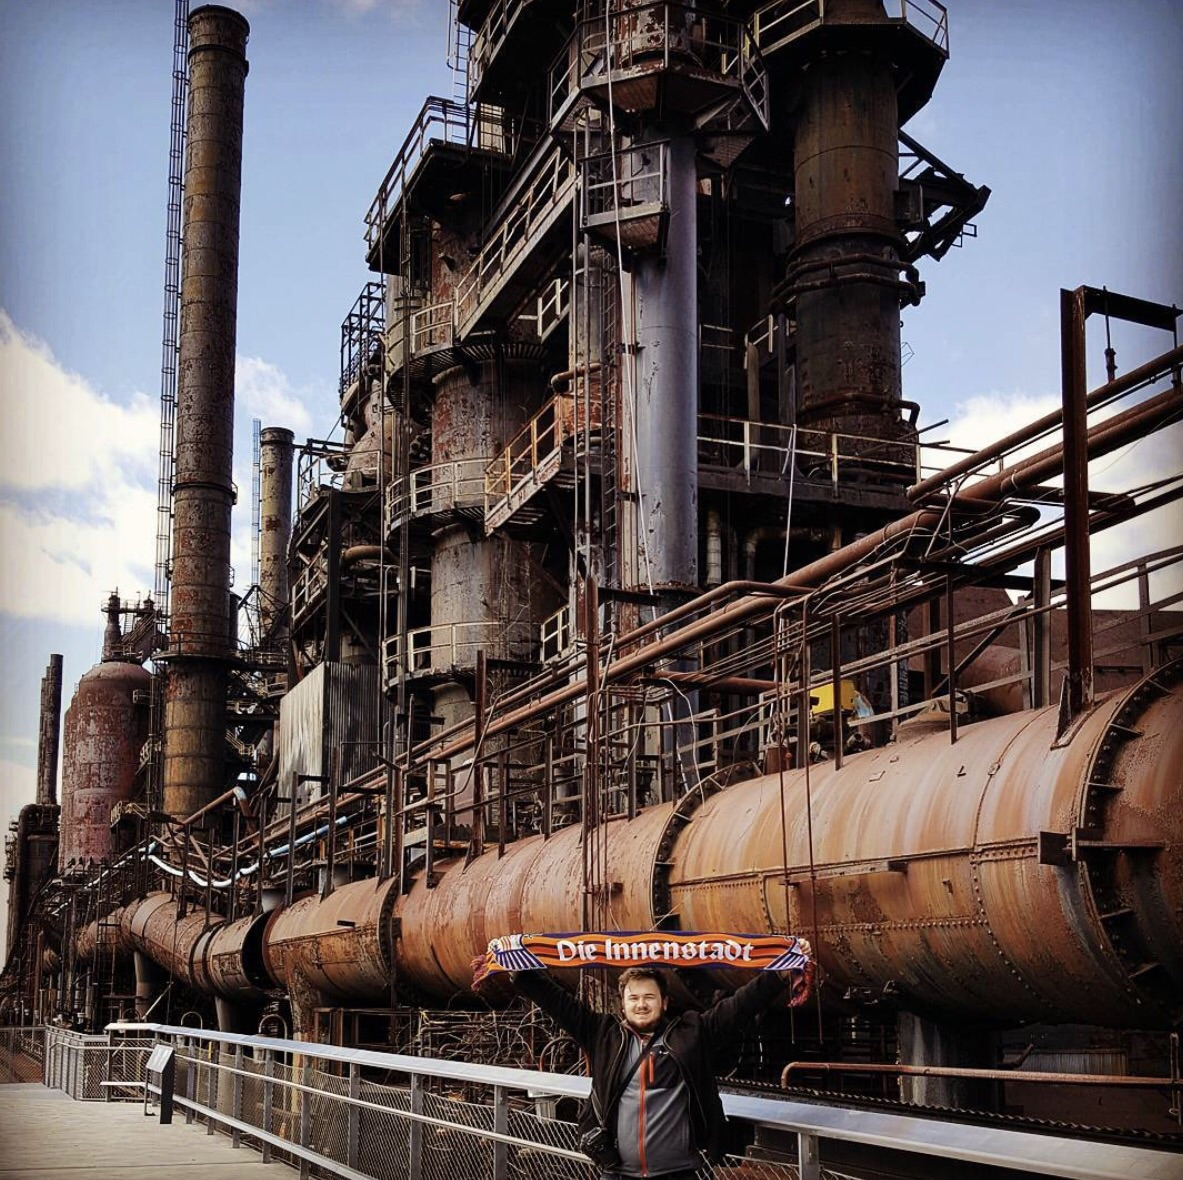 Ryan in front of the Bethlehem Steel plant.